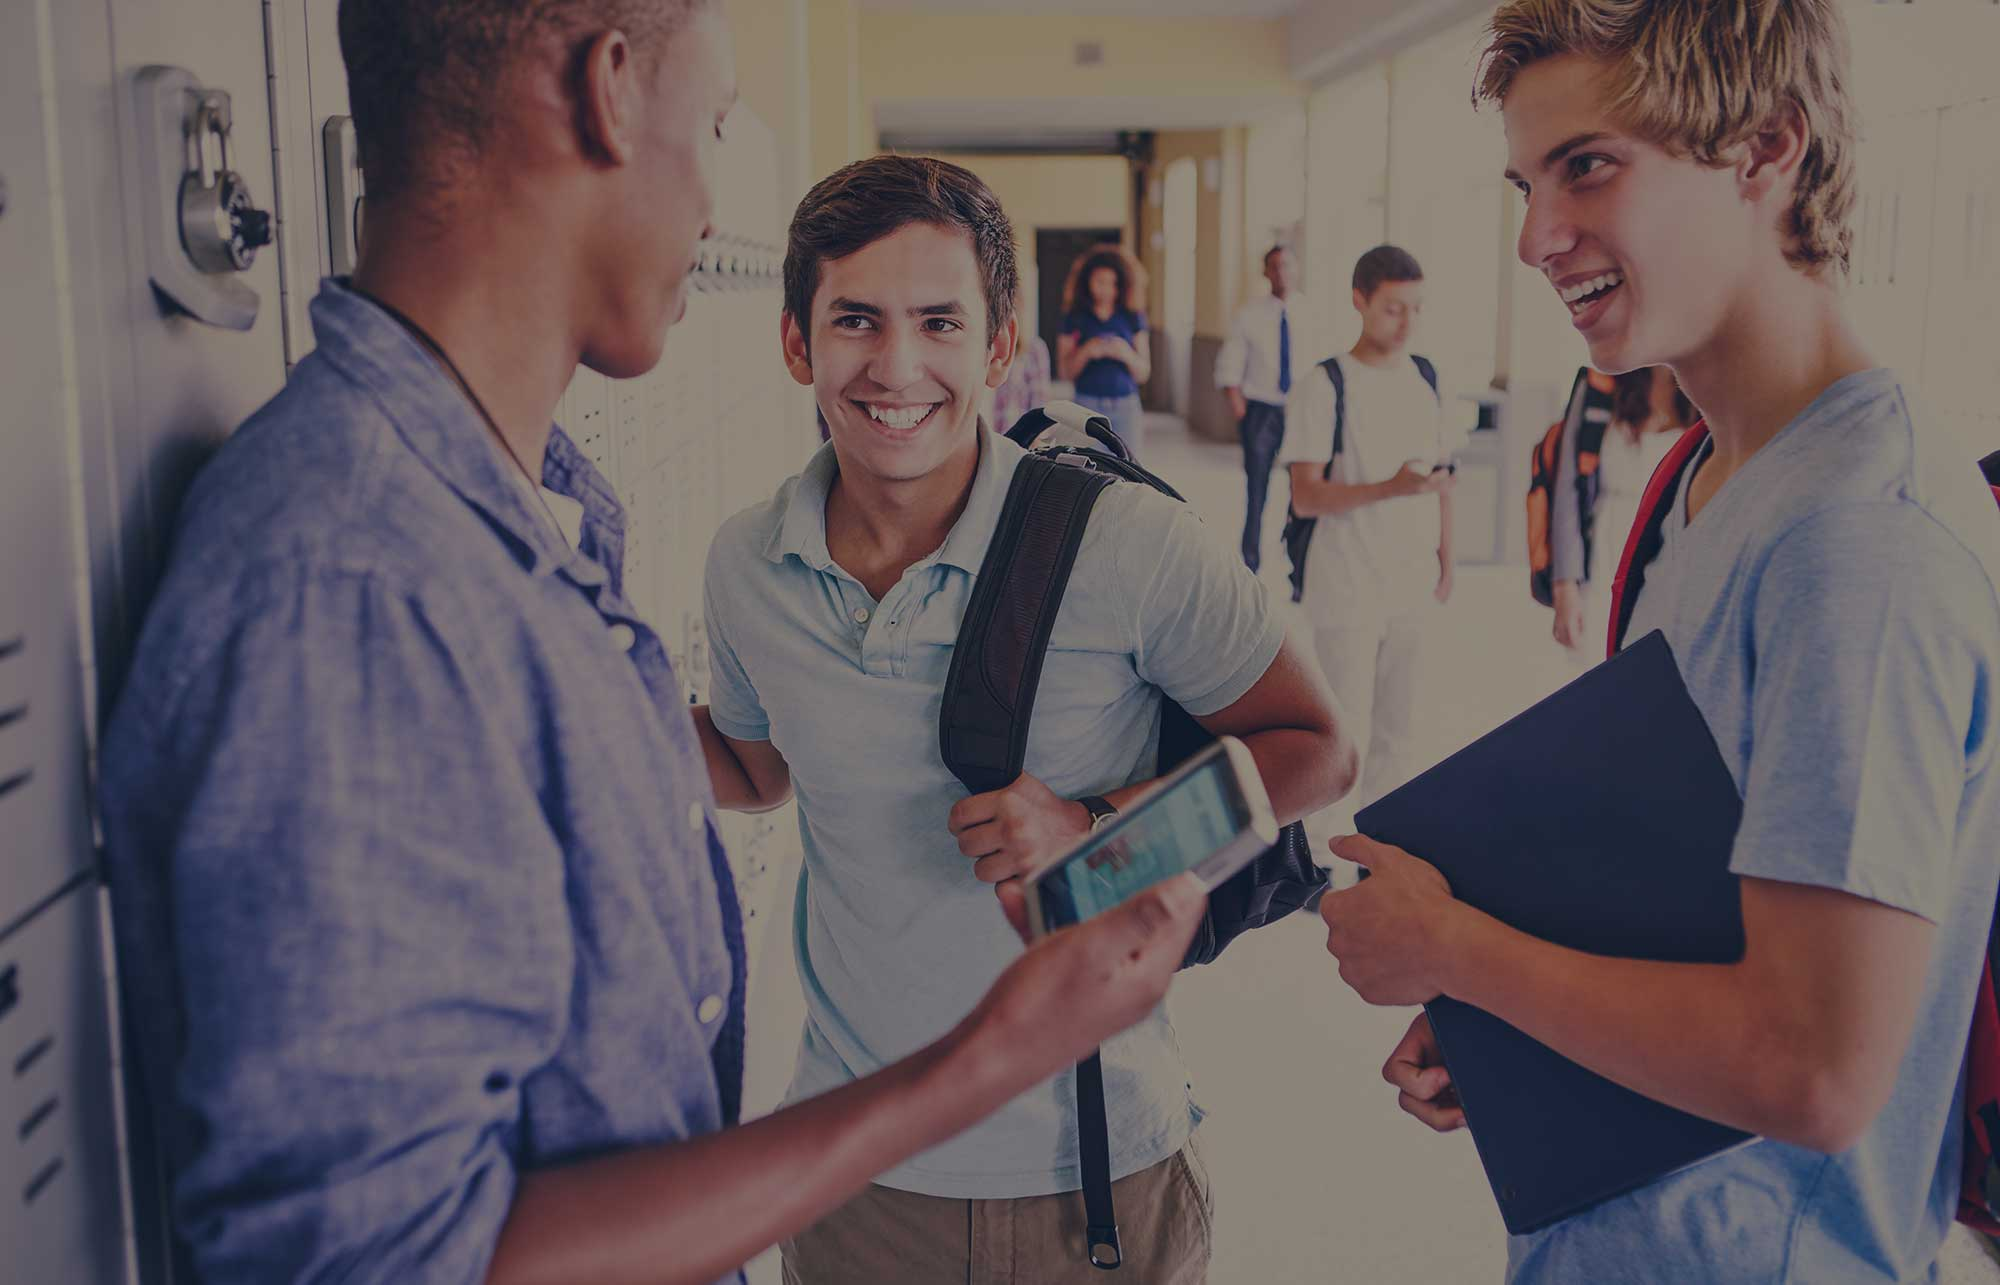 3 Schools Creating Perfect Interactive Experiences Using Beacons